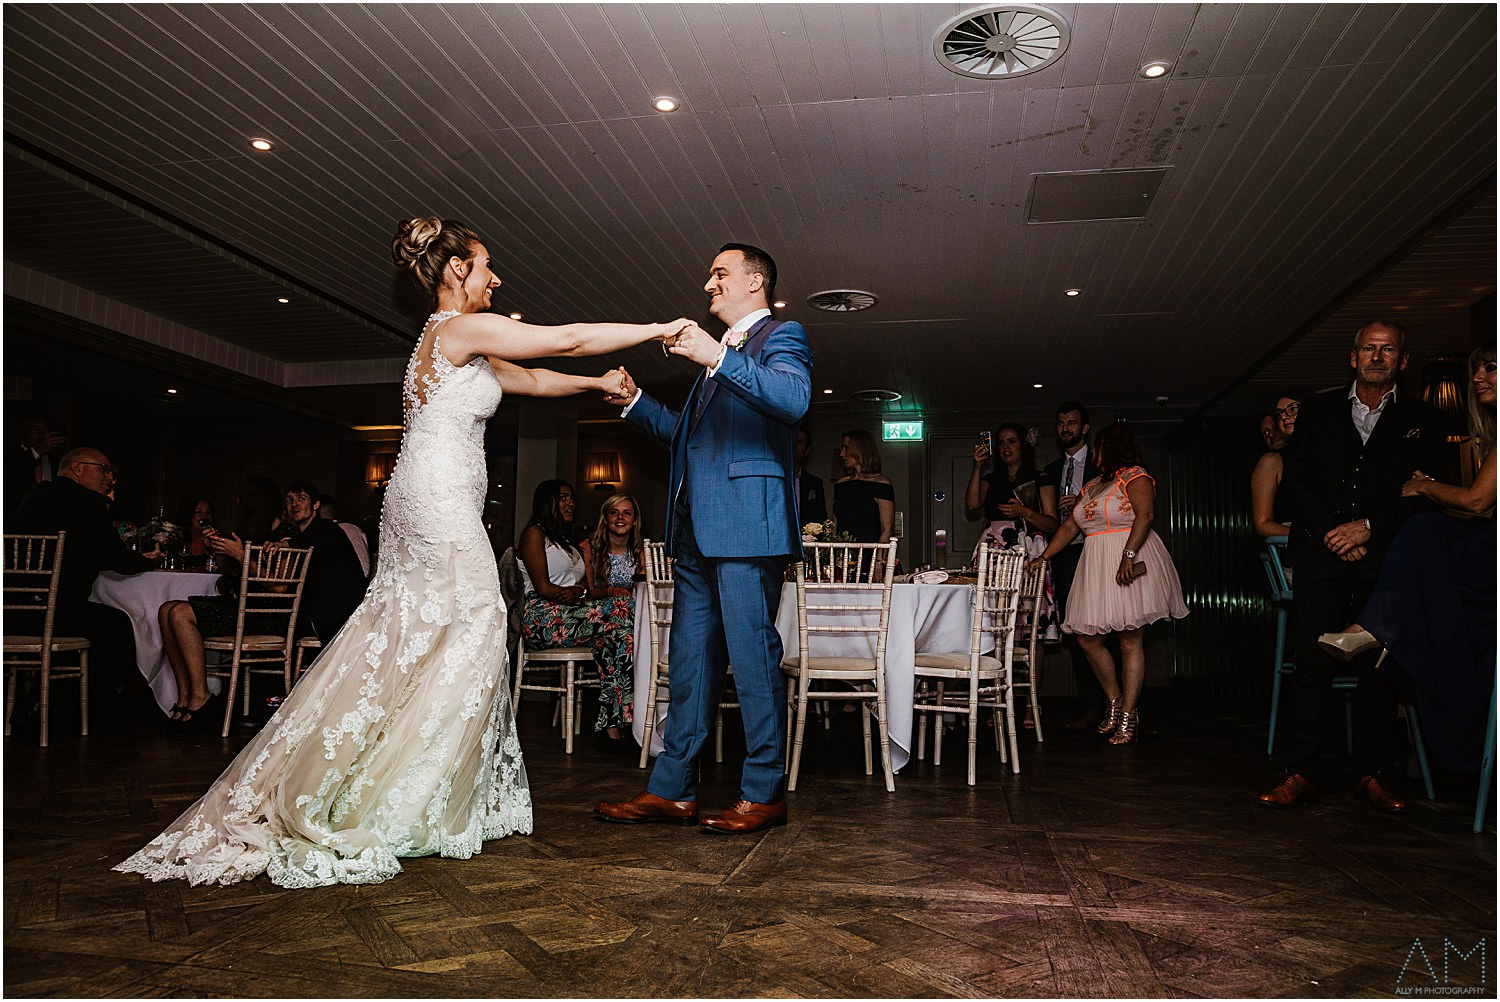 First dance at King street townhouse